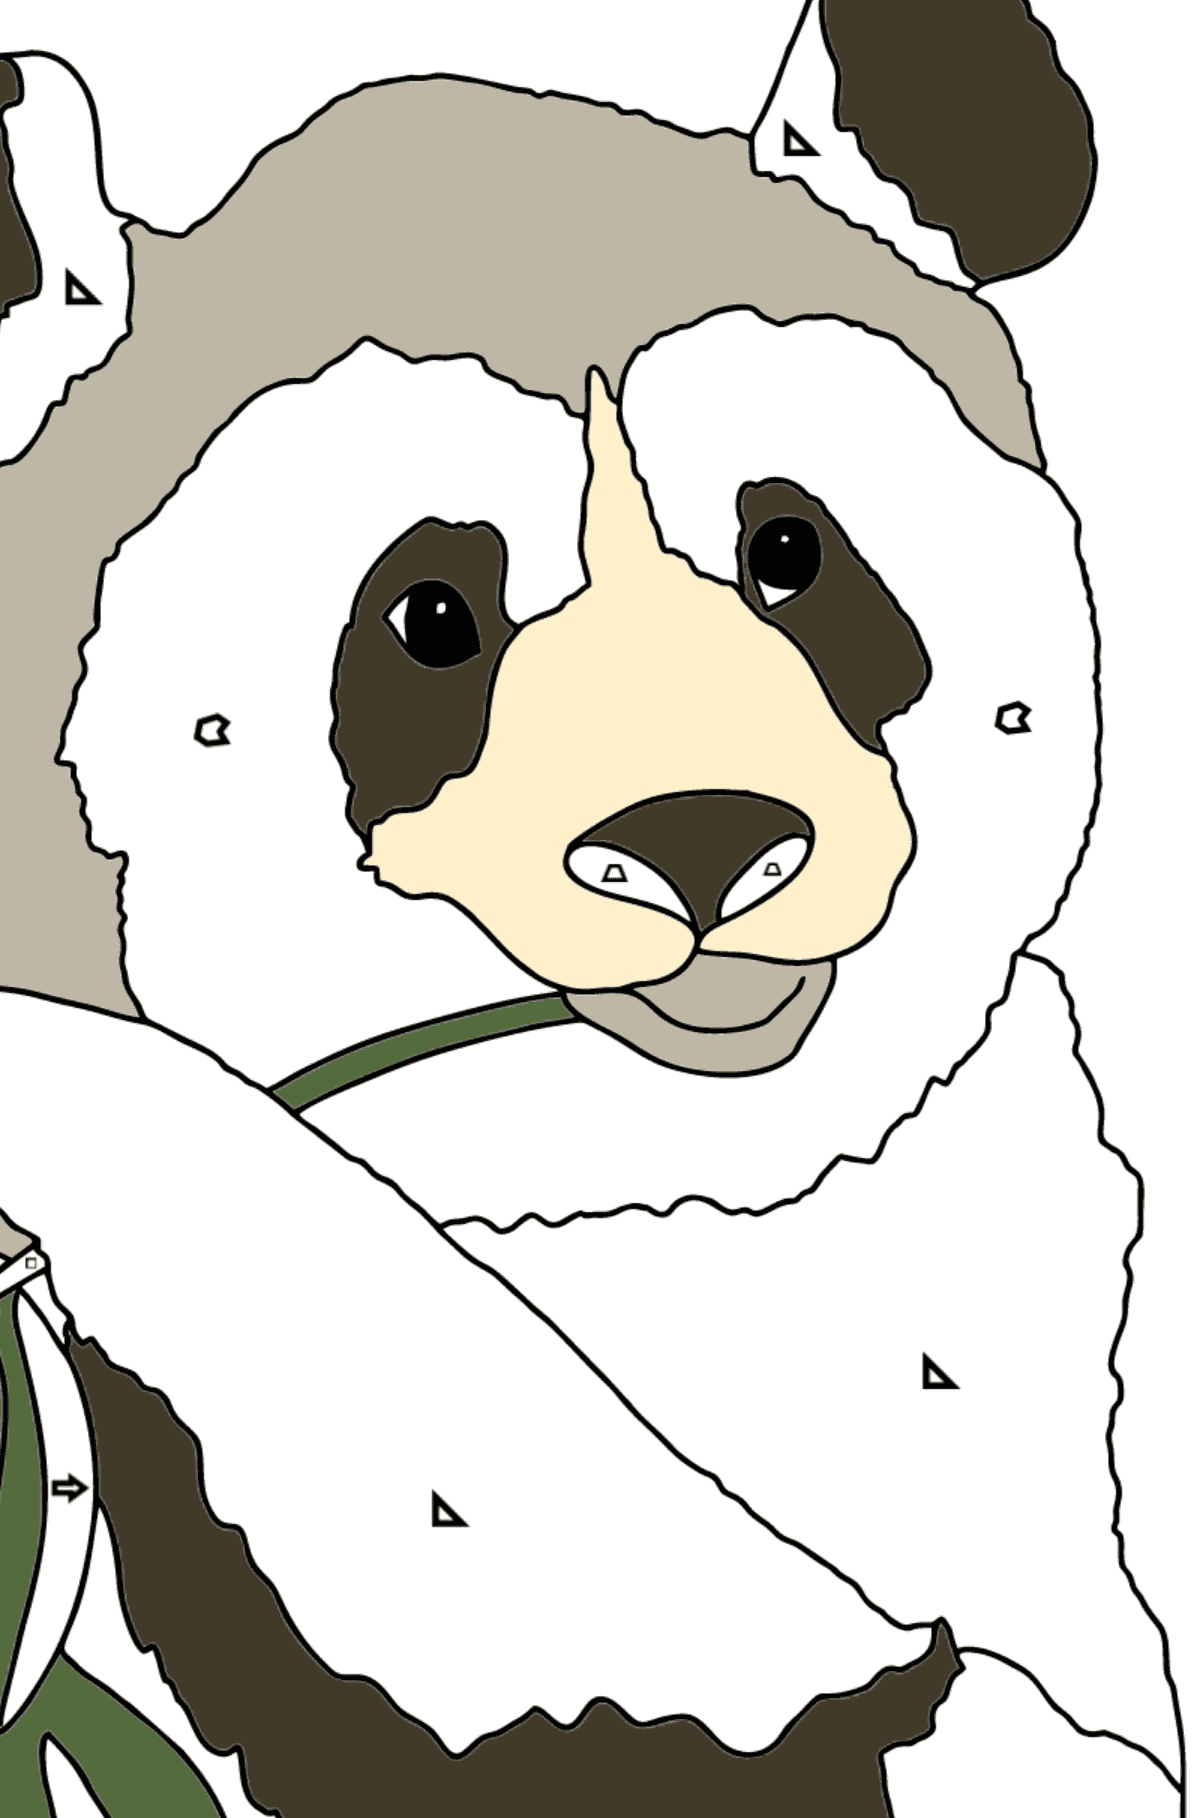 Coloring Page - A Panda is Eating Bamboo Stems and Leaves - Coloring by Geometric Shapes for Kids